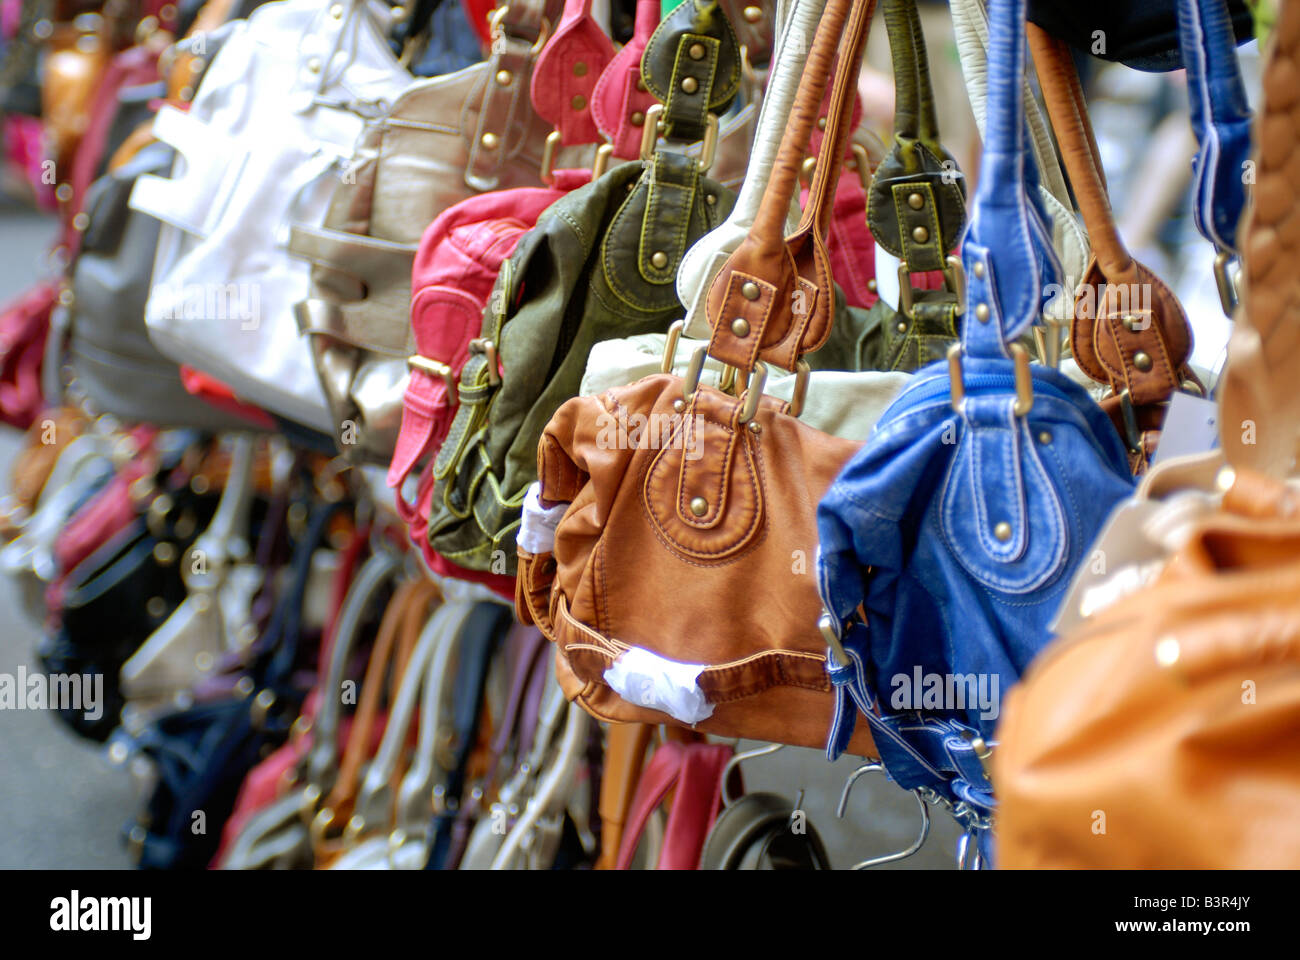 Handbags are sold at a street fair in NYC - Stock Image